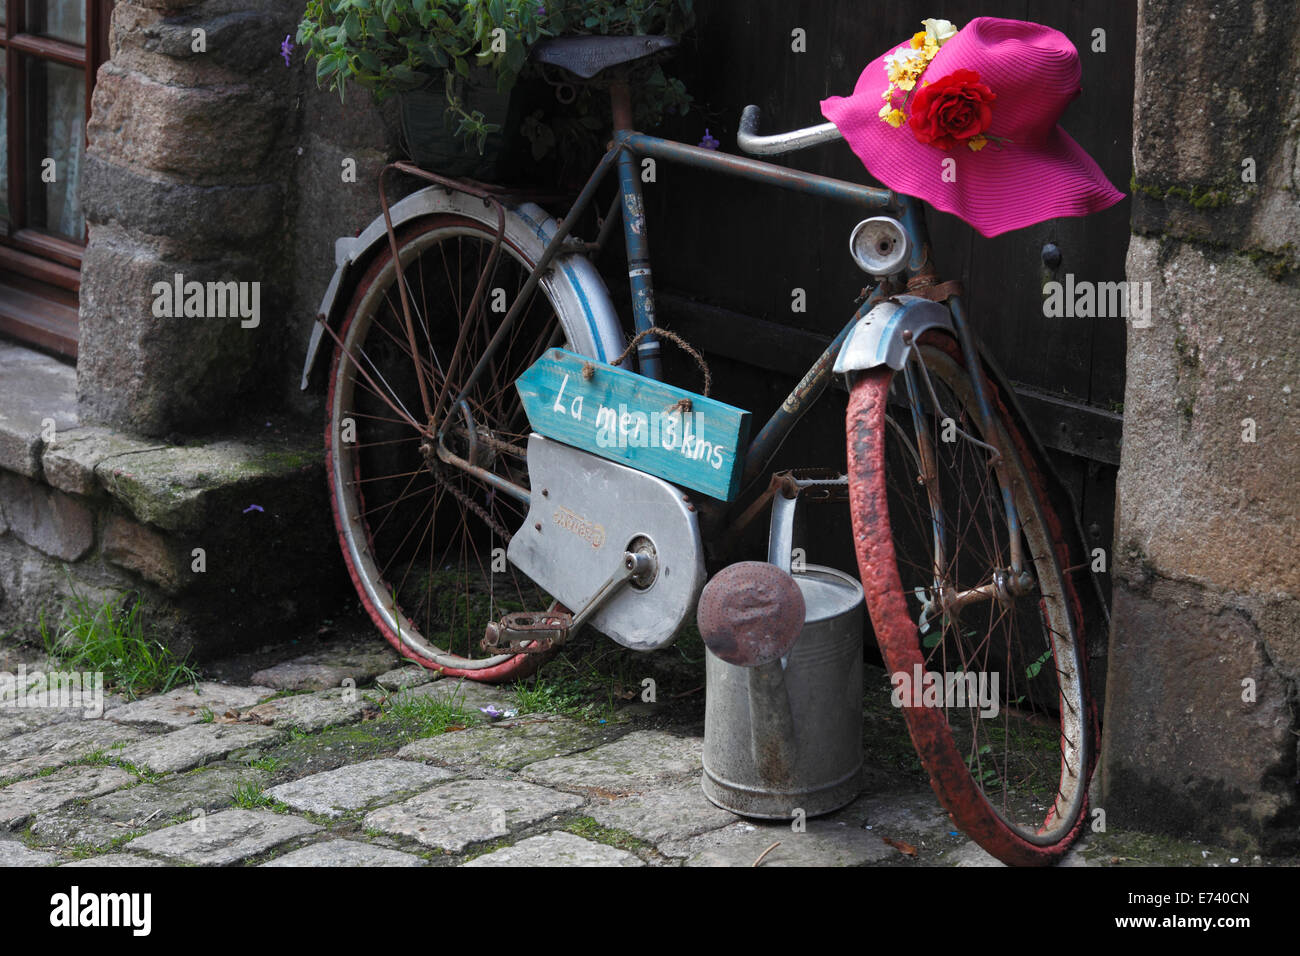 bike with a sign to the Sea, flowers and a pink hat on the handlebars. - Stock Image